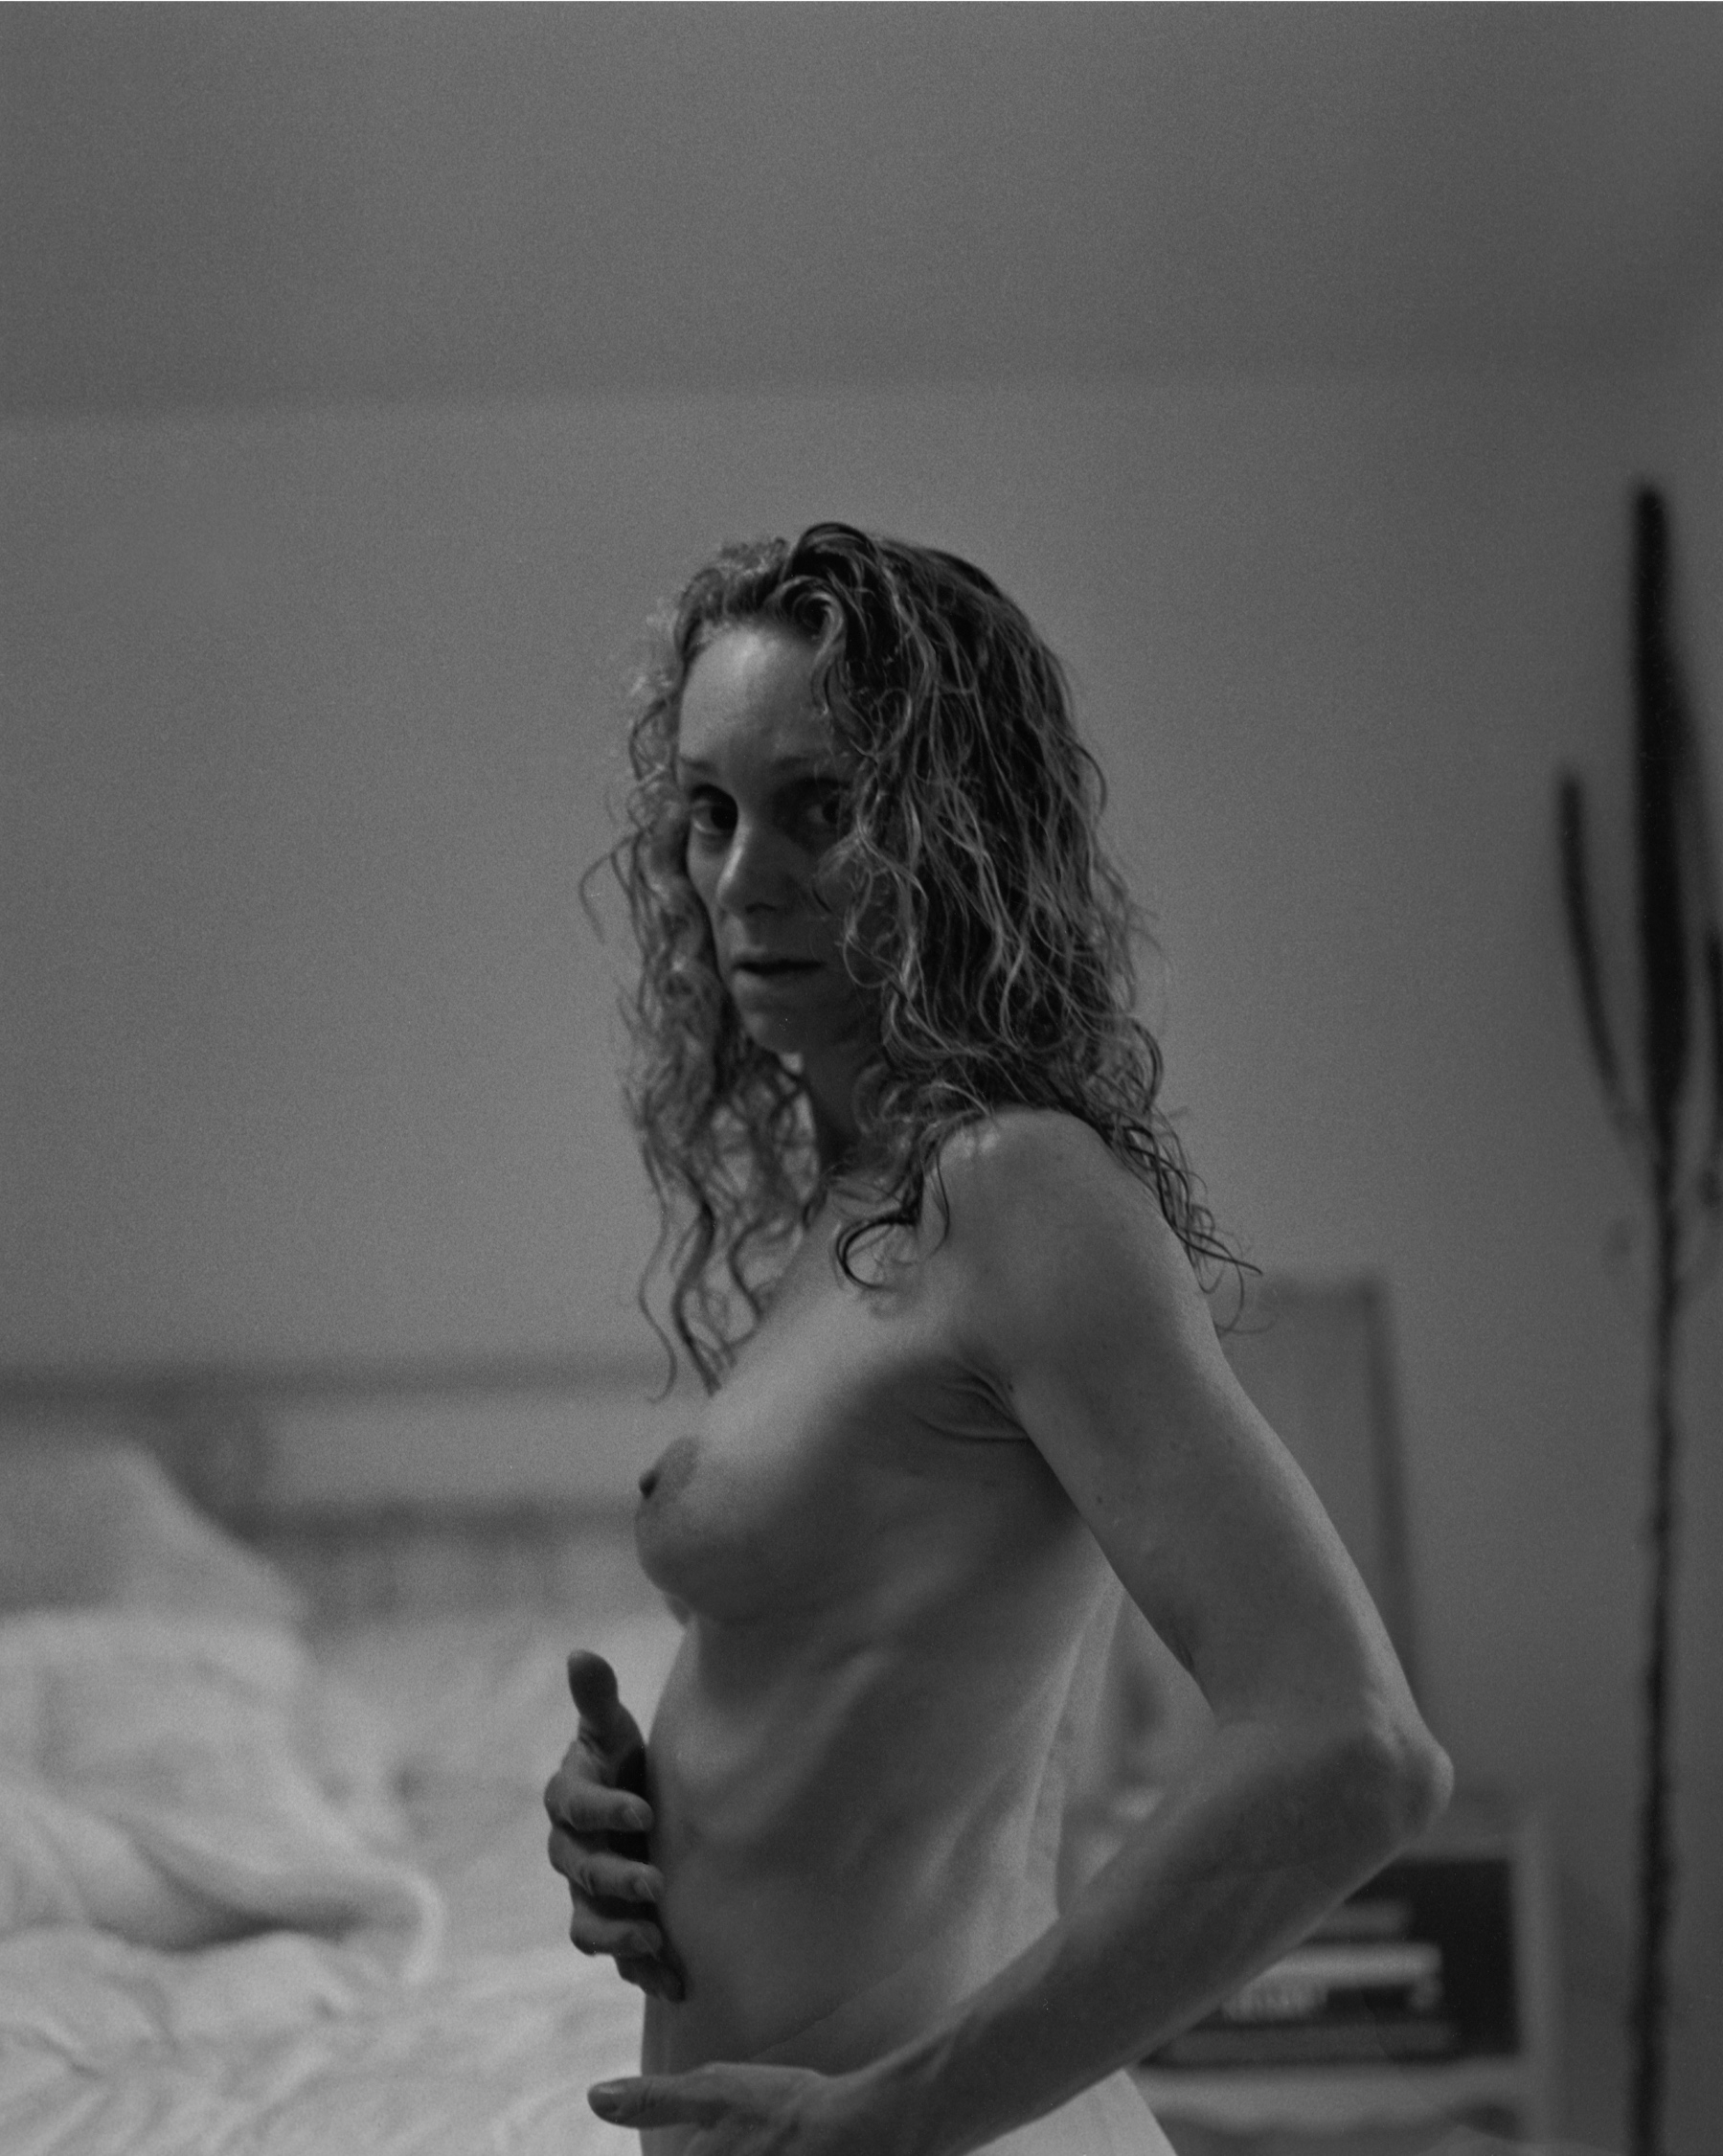 Anne in my bedroom, 2019/2010